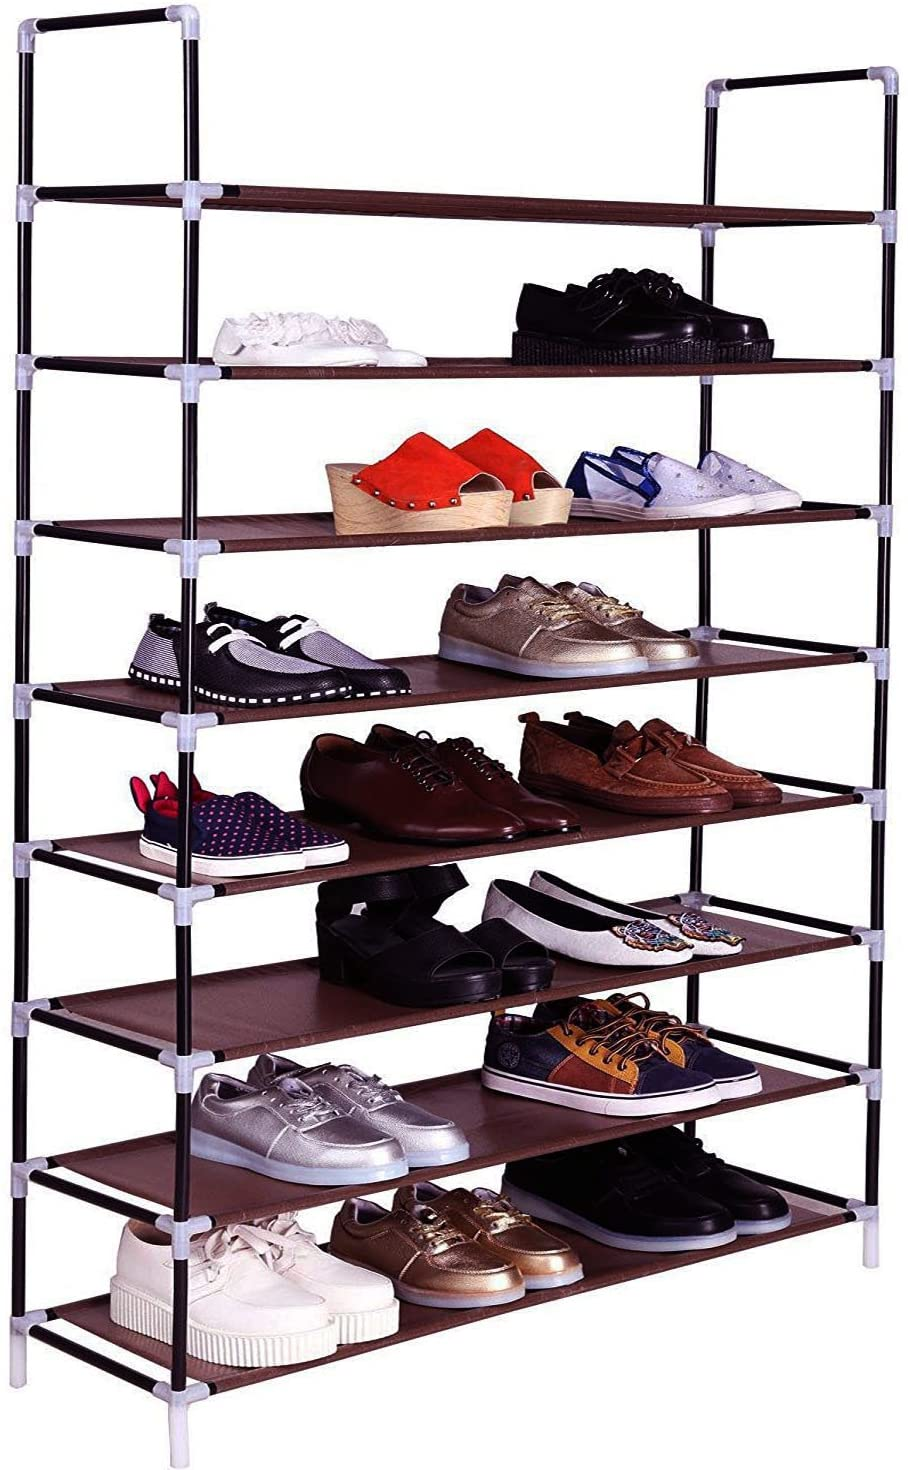 Fxionicon Shoe Rack Organizer Non-Woven Fabric Metal Sturdy Shoe Shelf Storage Cabinet Closets Stackable Shoe Holder Tower for entryway,8 Tier (Brown)